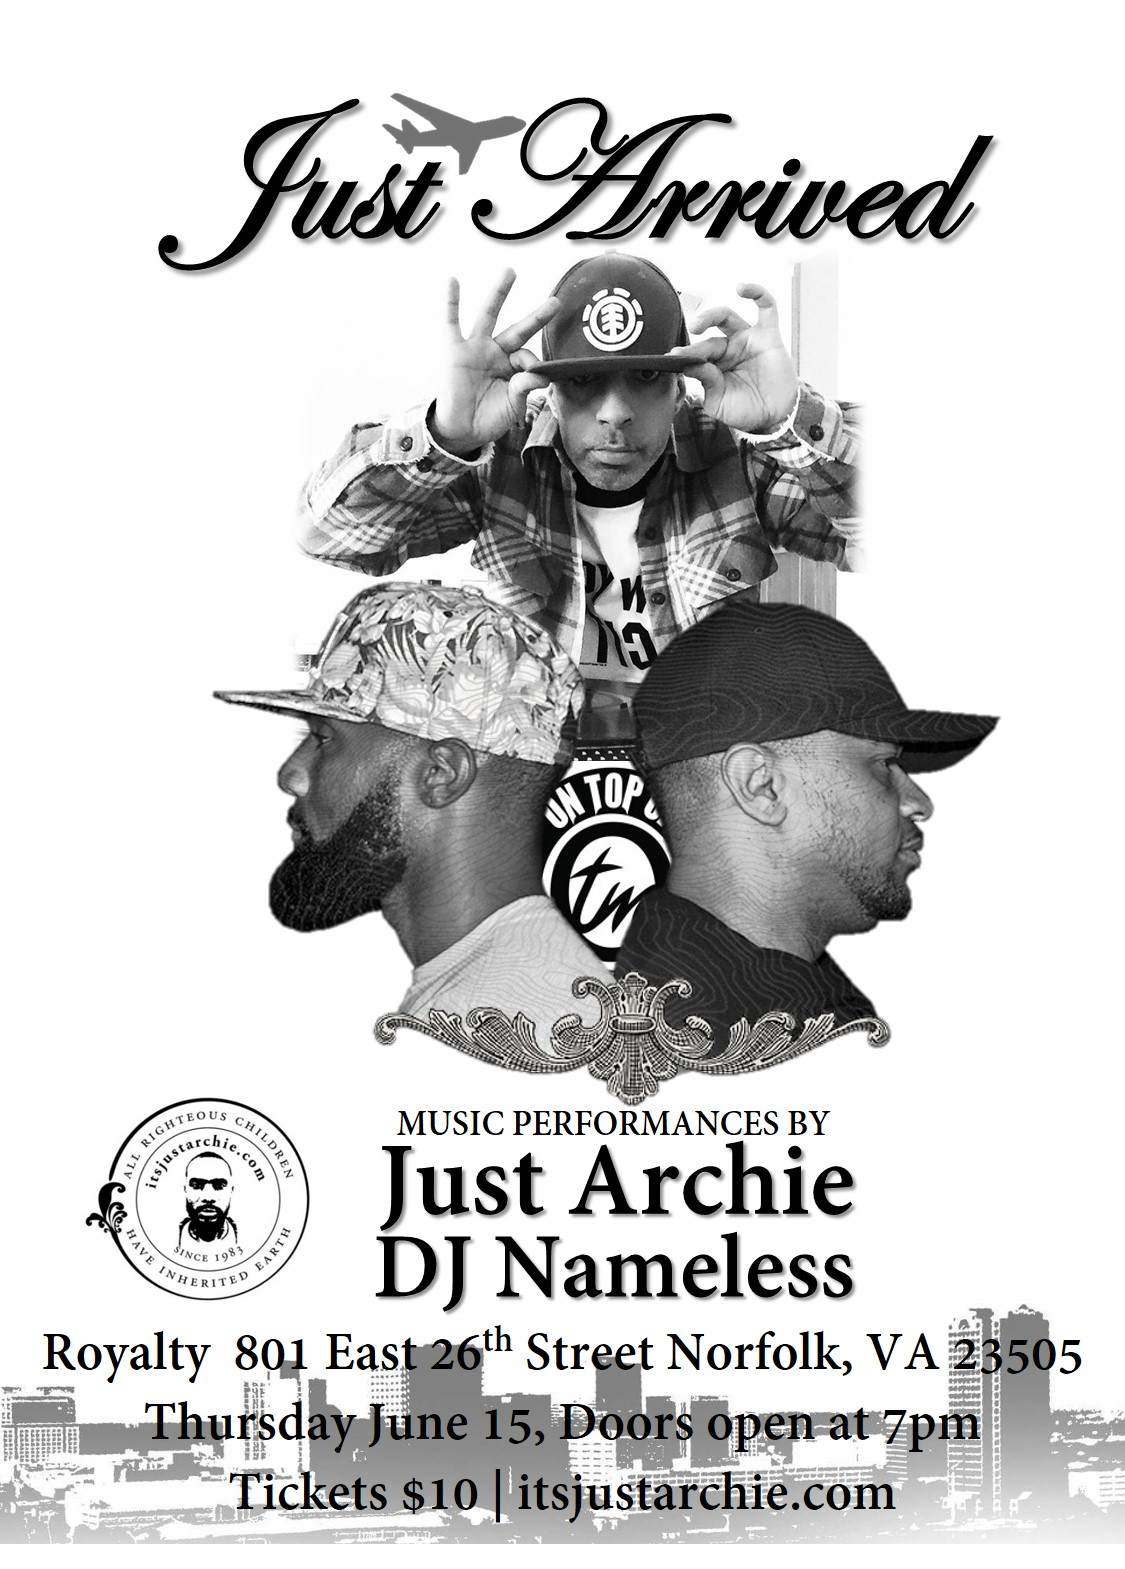 Musical performances by Just Archie & DJ Nameless Royalty  801 East 26th Street Norfolk, VA 23505 Thursday June 15, Doors open at 7pm Tickets $10 | itsjustarchie.com